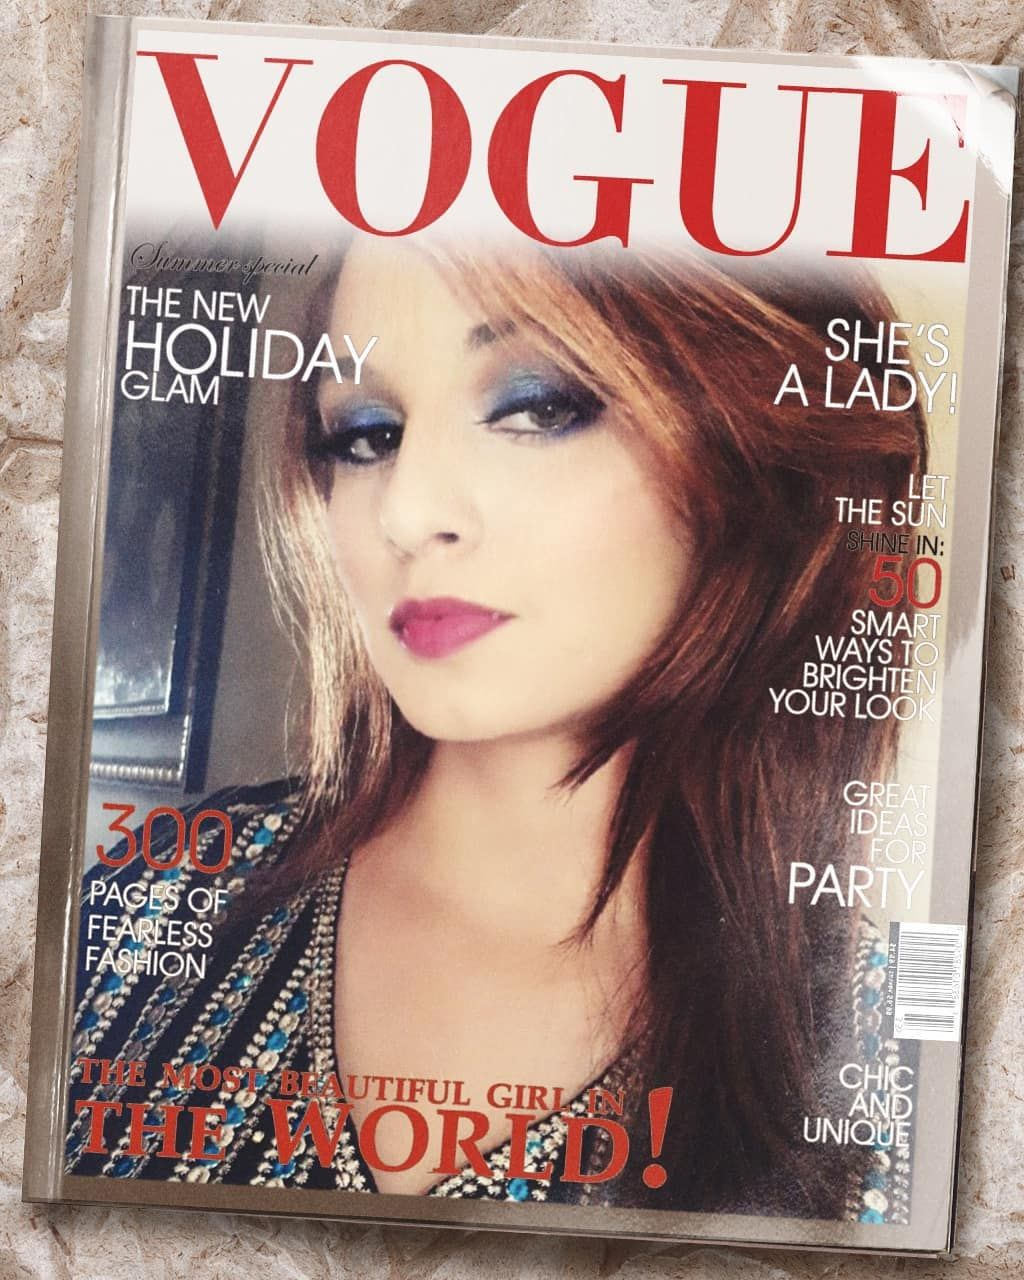 ... Vogue Challenge 📸 Pretty much the only chance I'll ever get so why not 😂 __________________ Vogue template from Pho.to __________________ #vogue #voguechallenge #magazine #magazinecover #fun #cool #cute #amazing #love #me #selfie #girl #makeup #beauty #edit #fashion #style #photo #photography #photooftheday #picoftheday #bestoftheday #instagood #instadaily #instagram #instafashion #instalike #instafollow #igers #igdaily